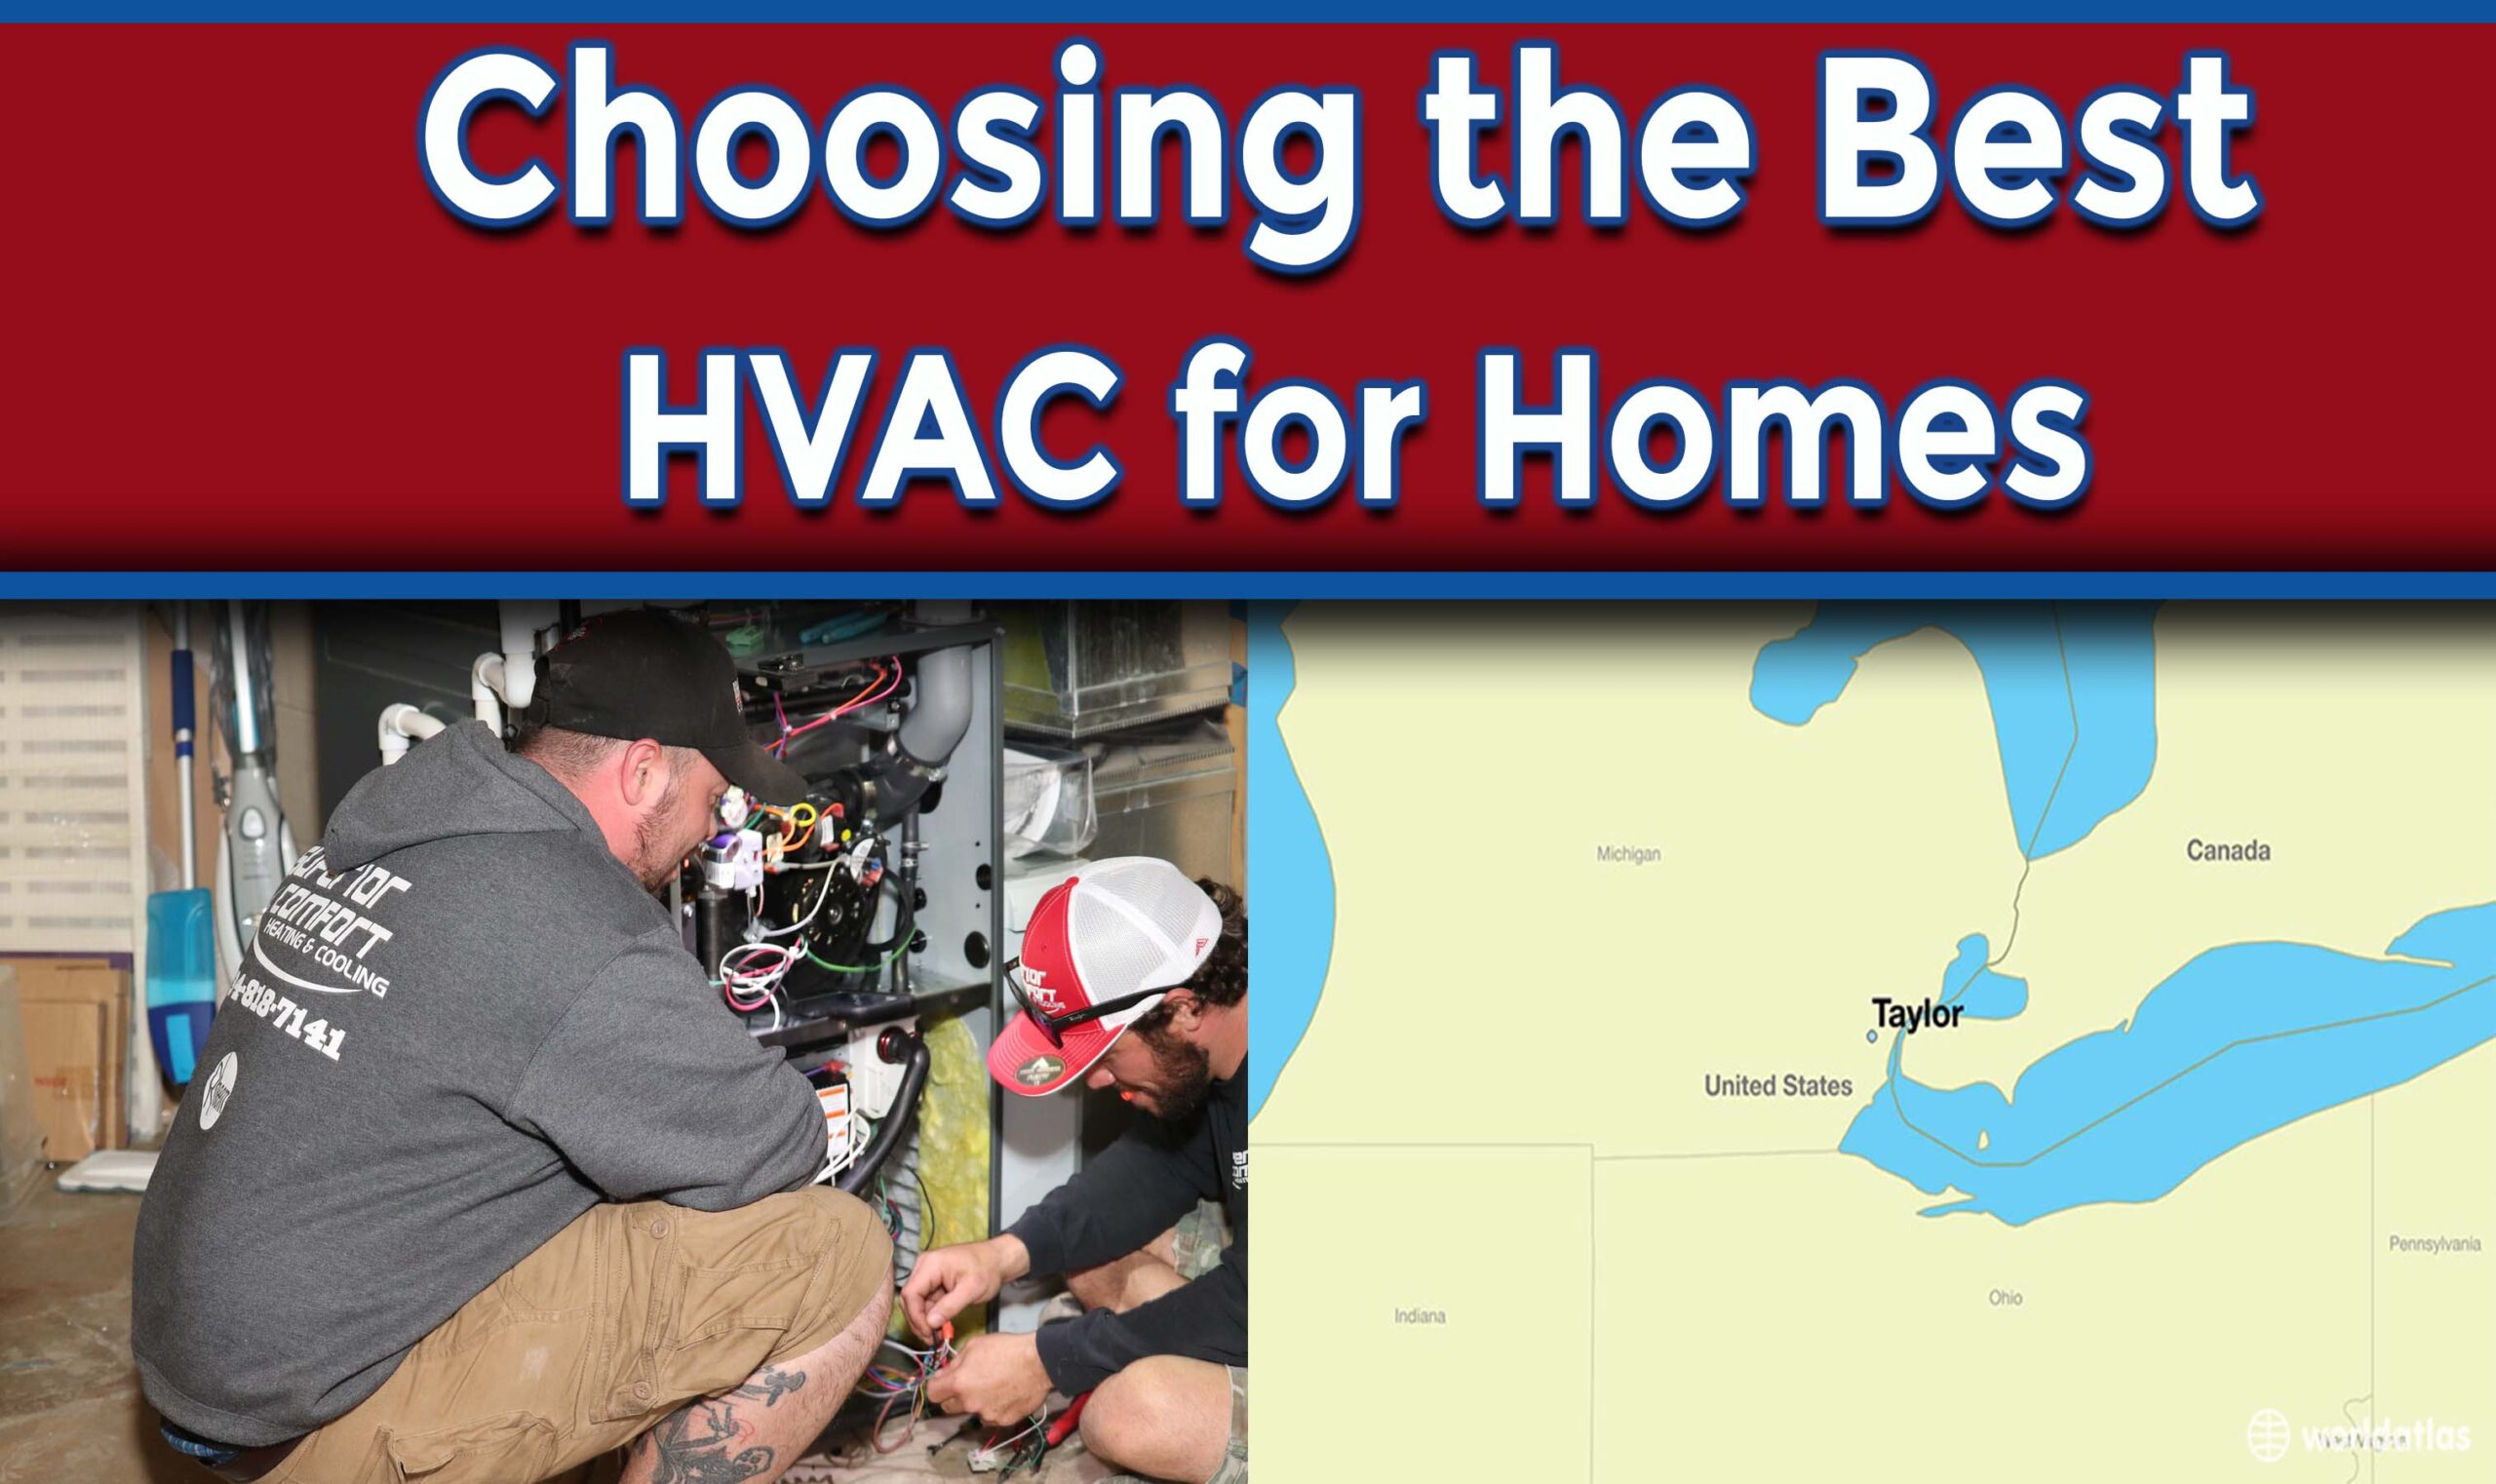 How to Choose the Best AC System for Homes